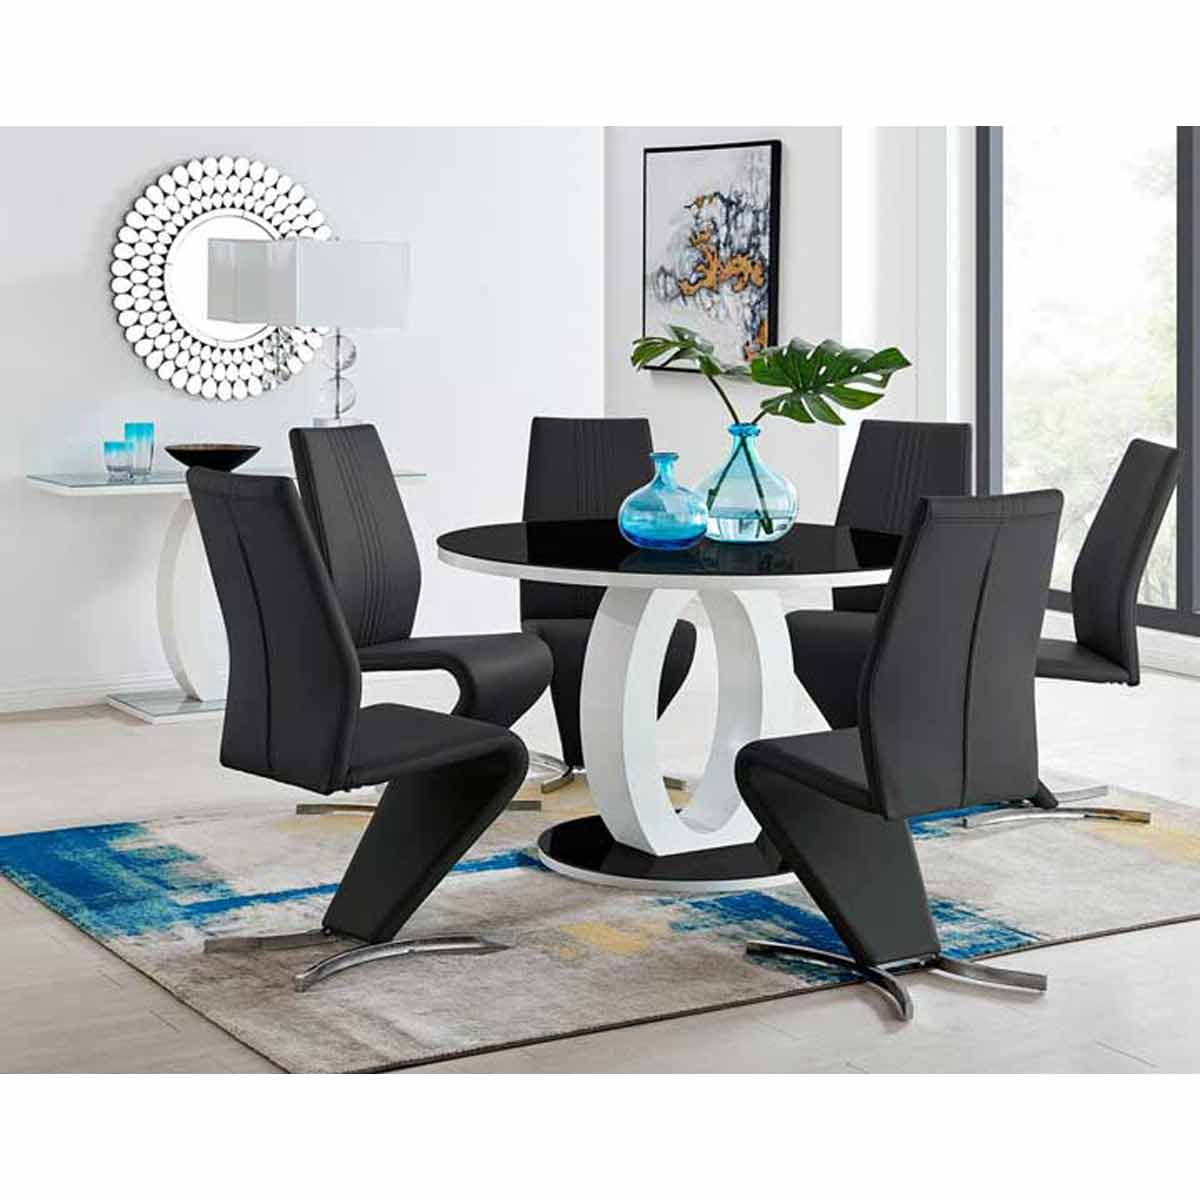 Furniture Box Giovani High Gloss And Glass Large Round Dining Table And 6 Luxury Black Willow Dining Chairs Set